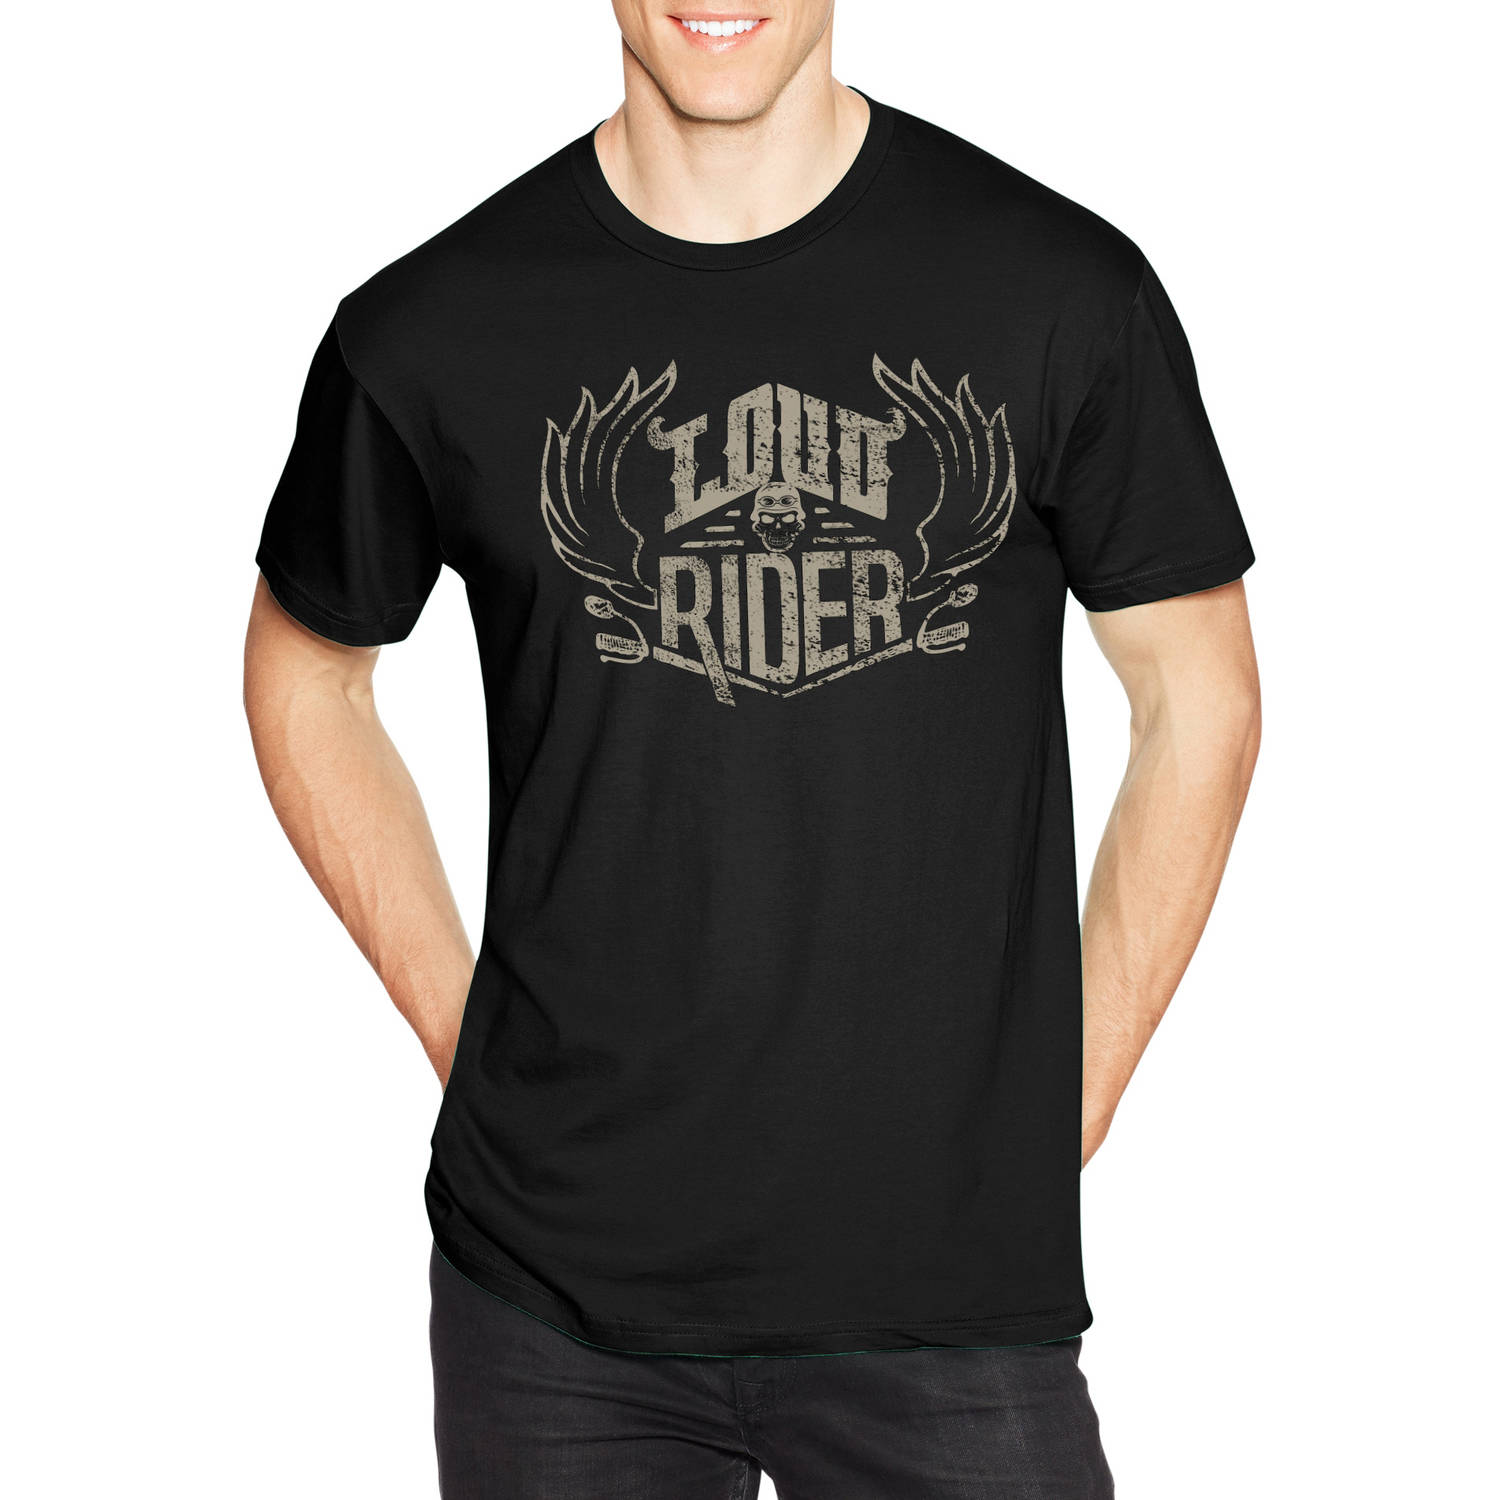 Big Men's Lightweight Graphic Tee - Americana Collection